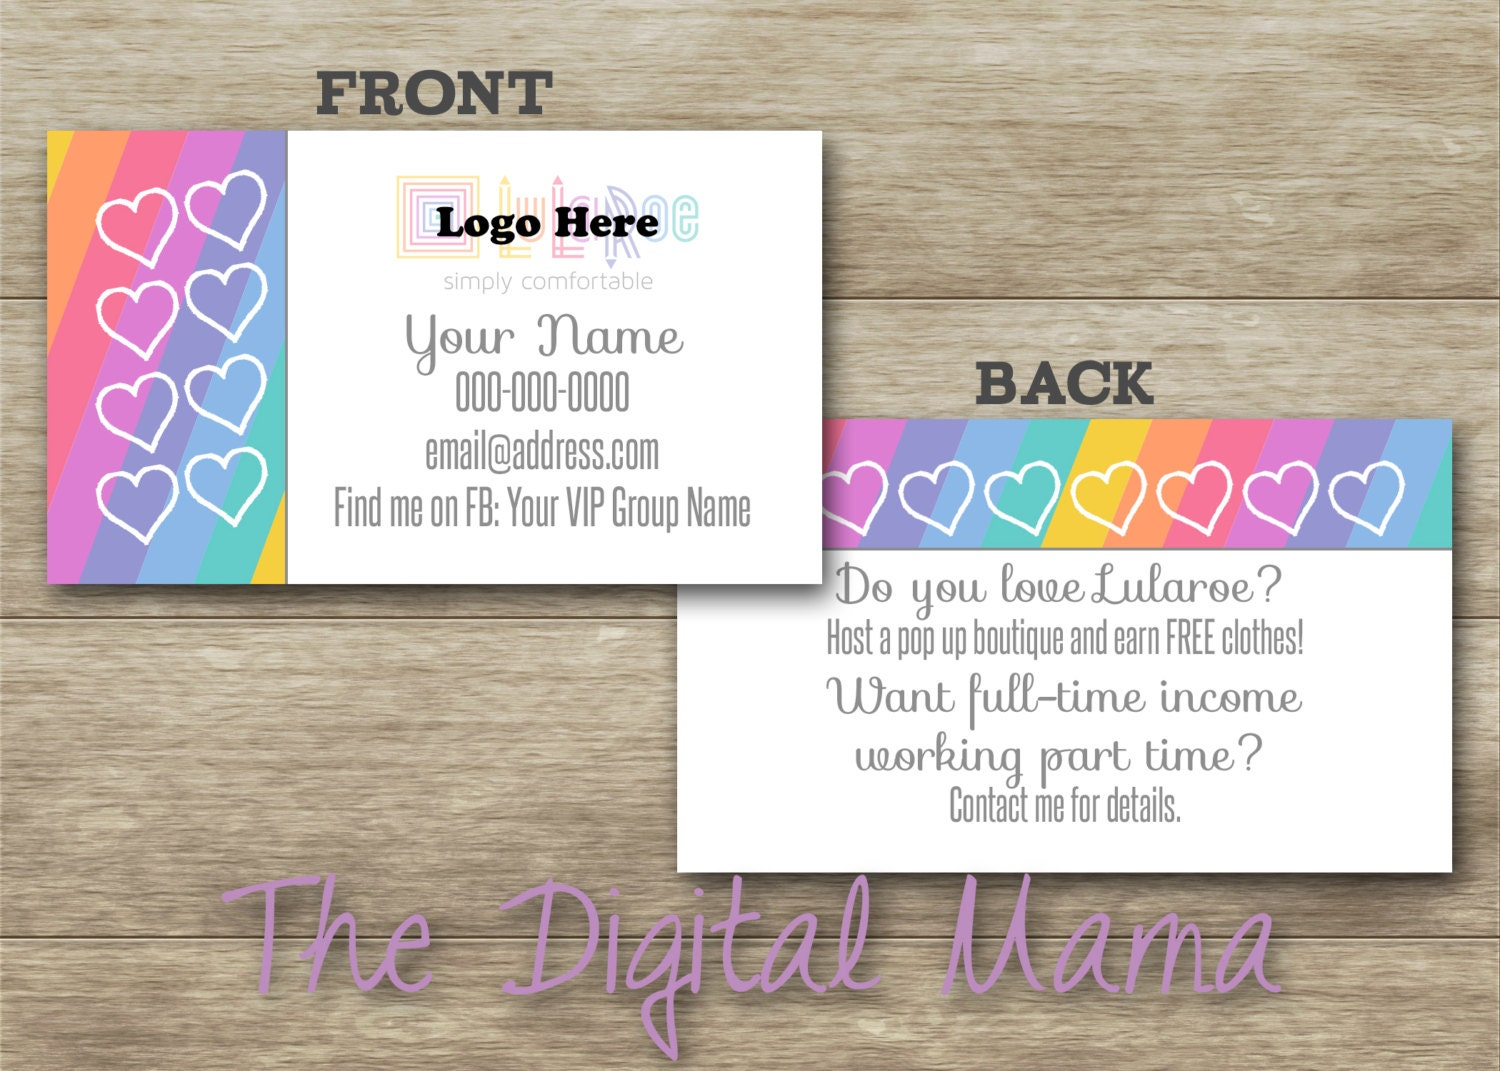 Lularoe consultant business cards design by thedigitalmama for Etsy lularoe business cards